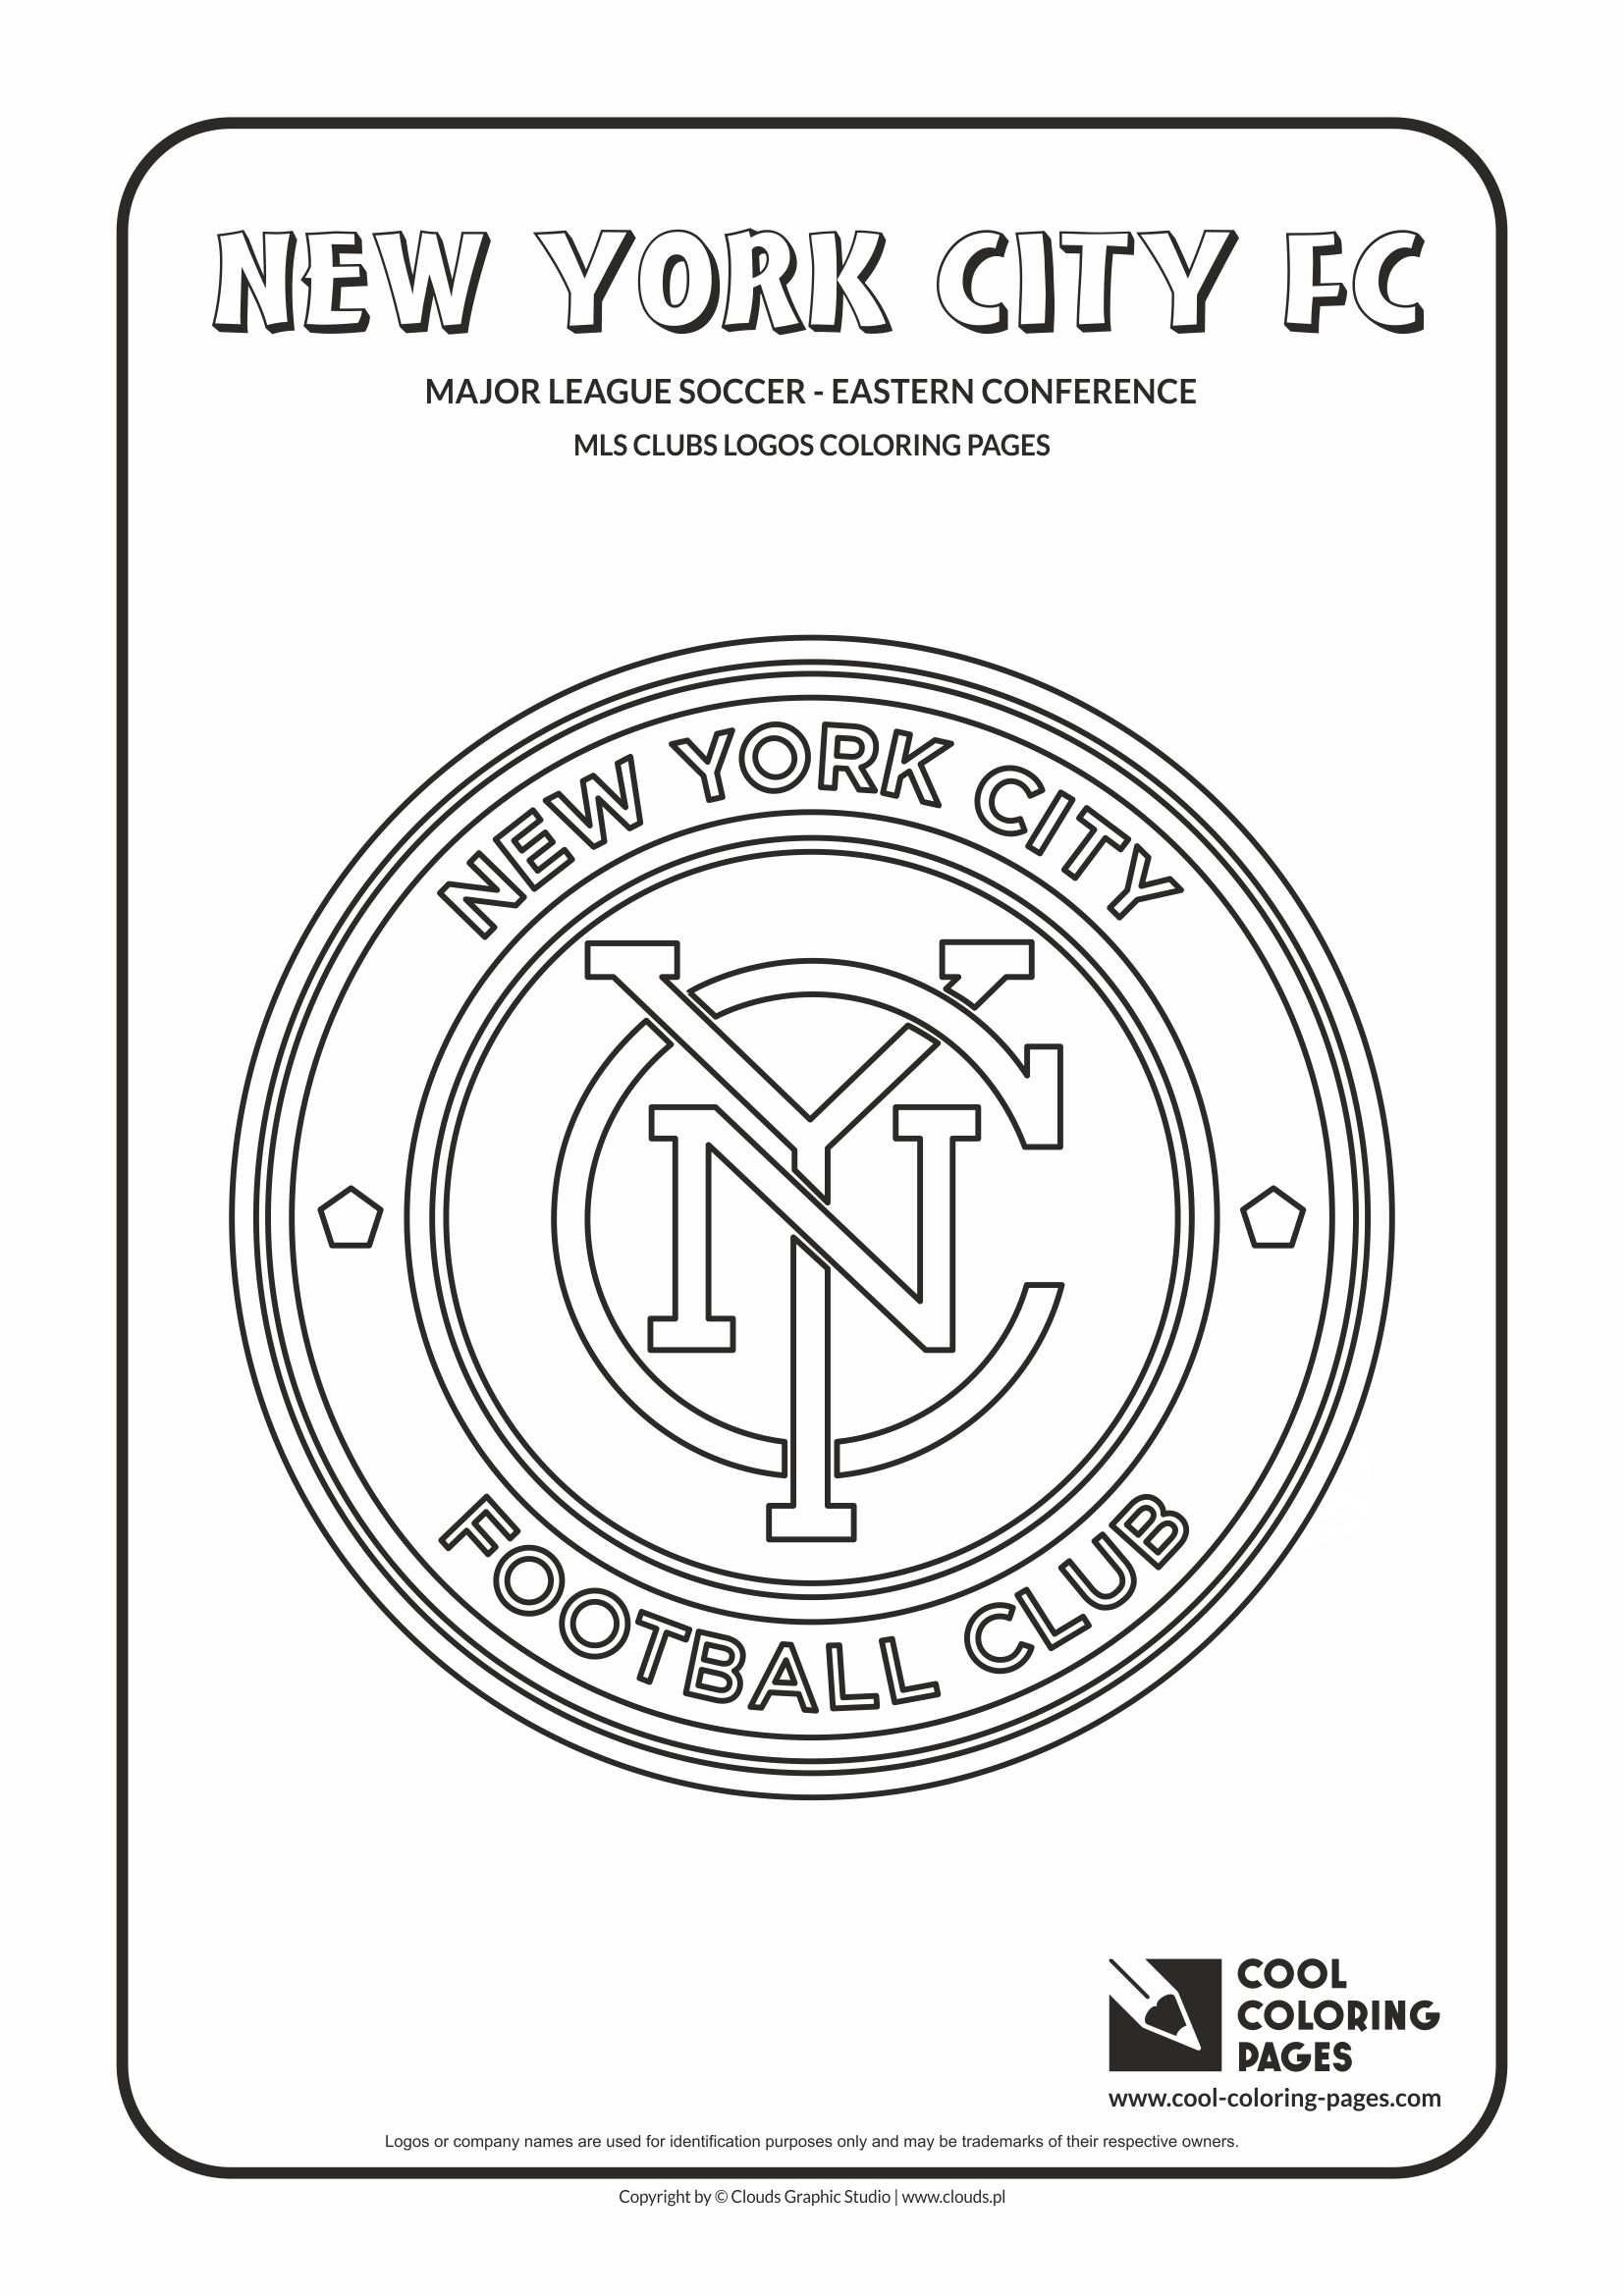 Free coloring pages new york city - Cool Coloring Pages Major League Soccer Logos Eastern Conference New York City Fc